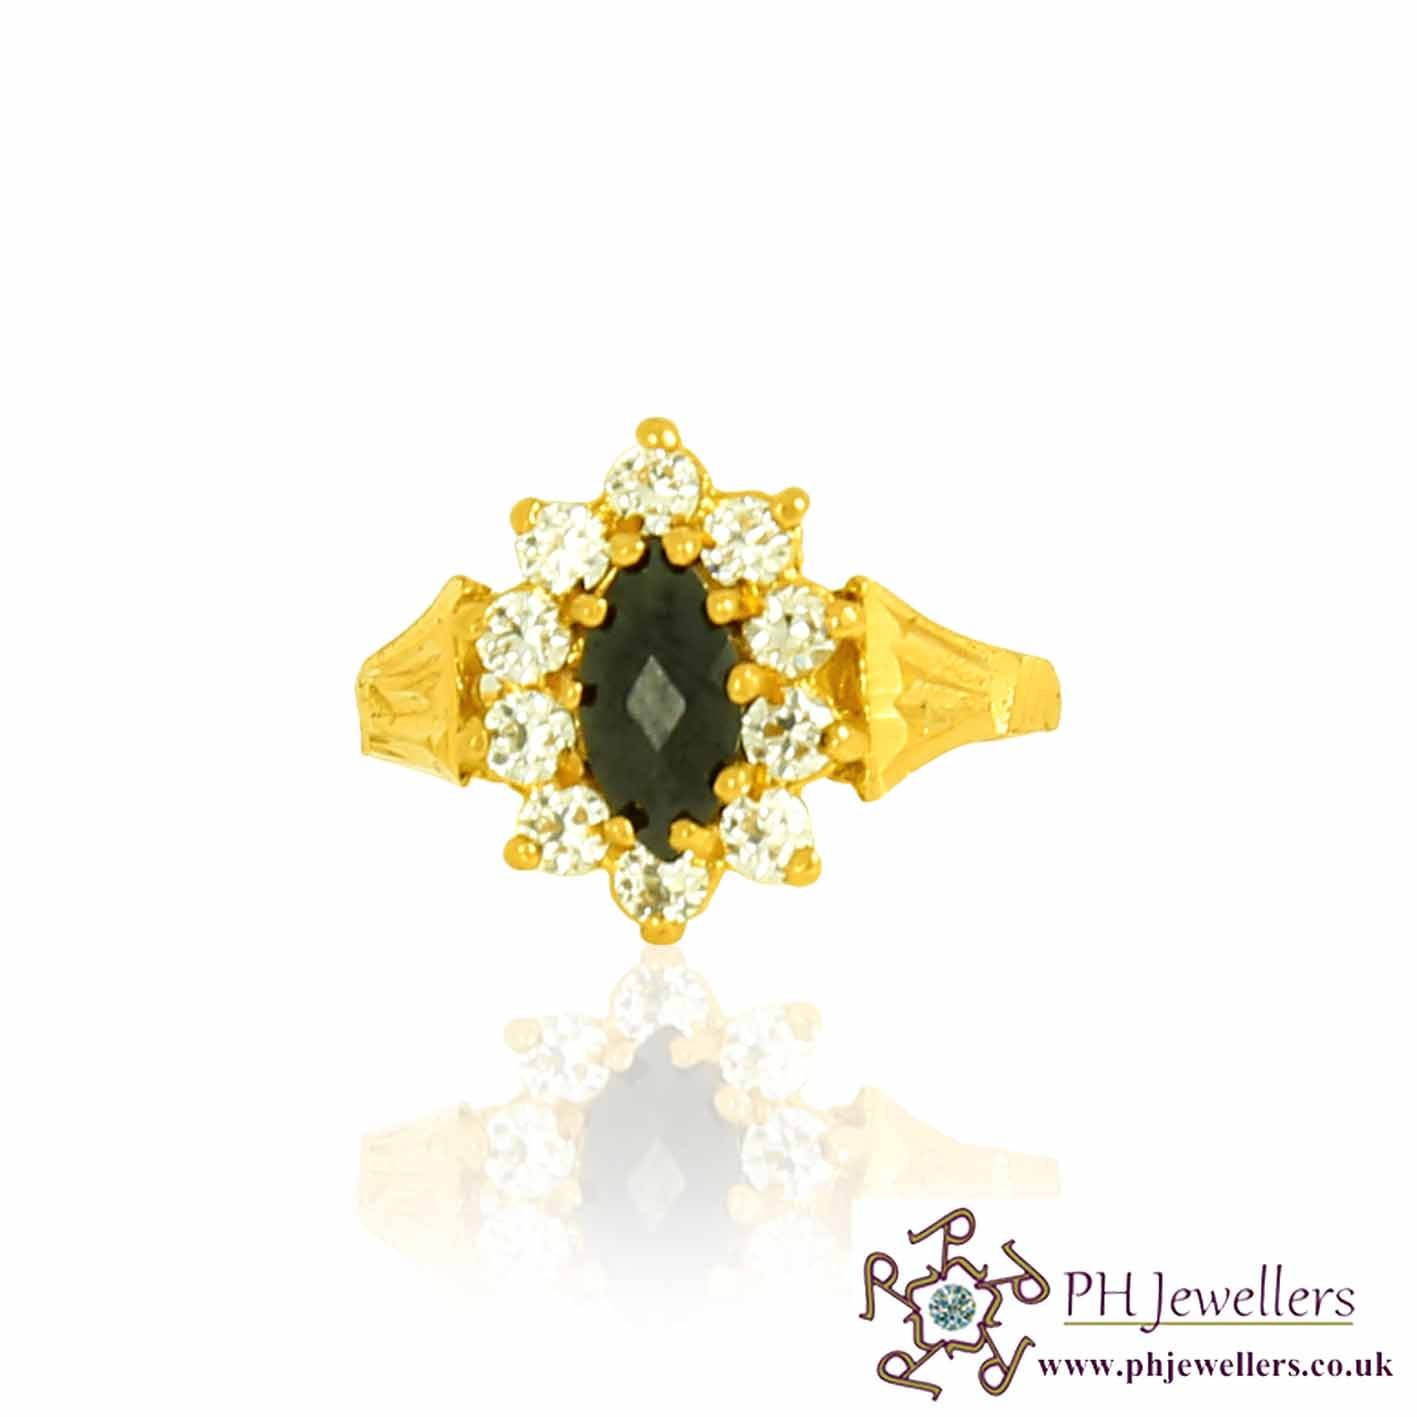 22ct 916 Hallmark Yellow Gold Black/White Size J,K Ring CZ SR99